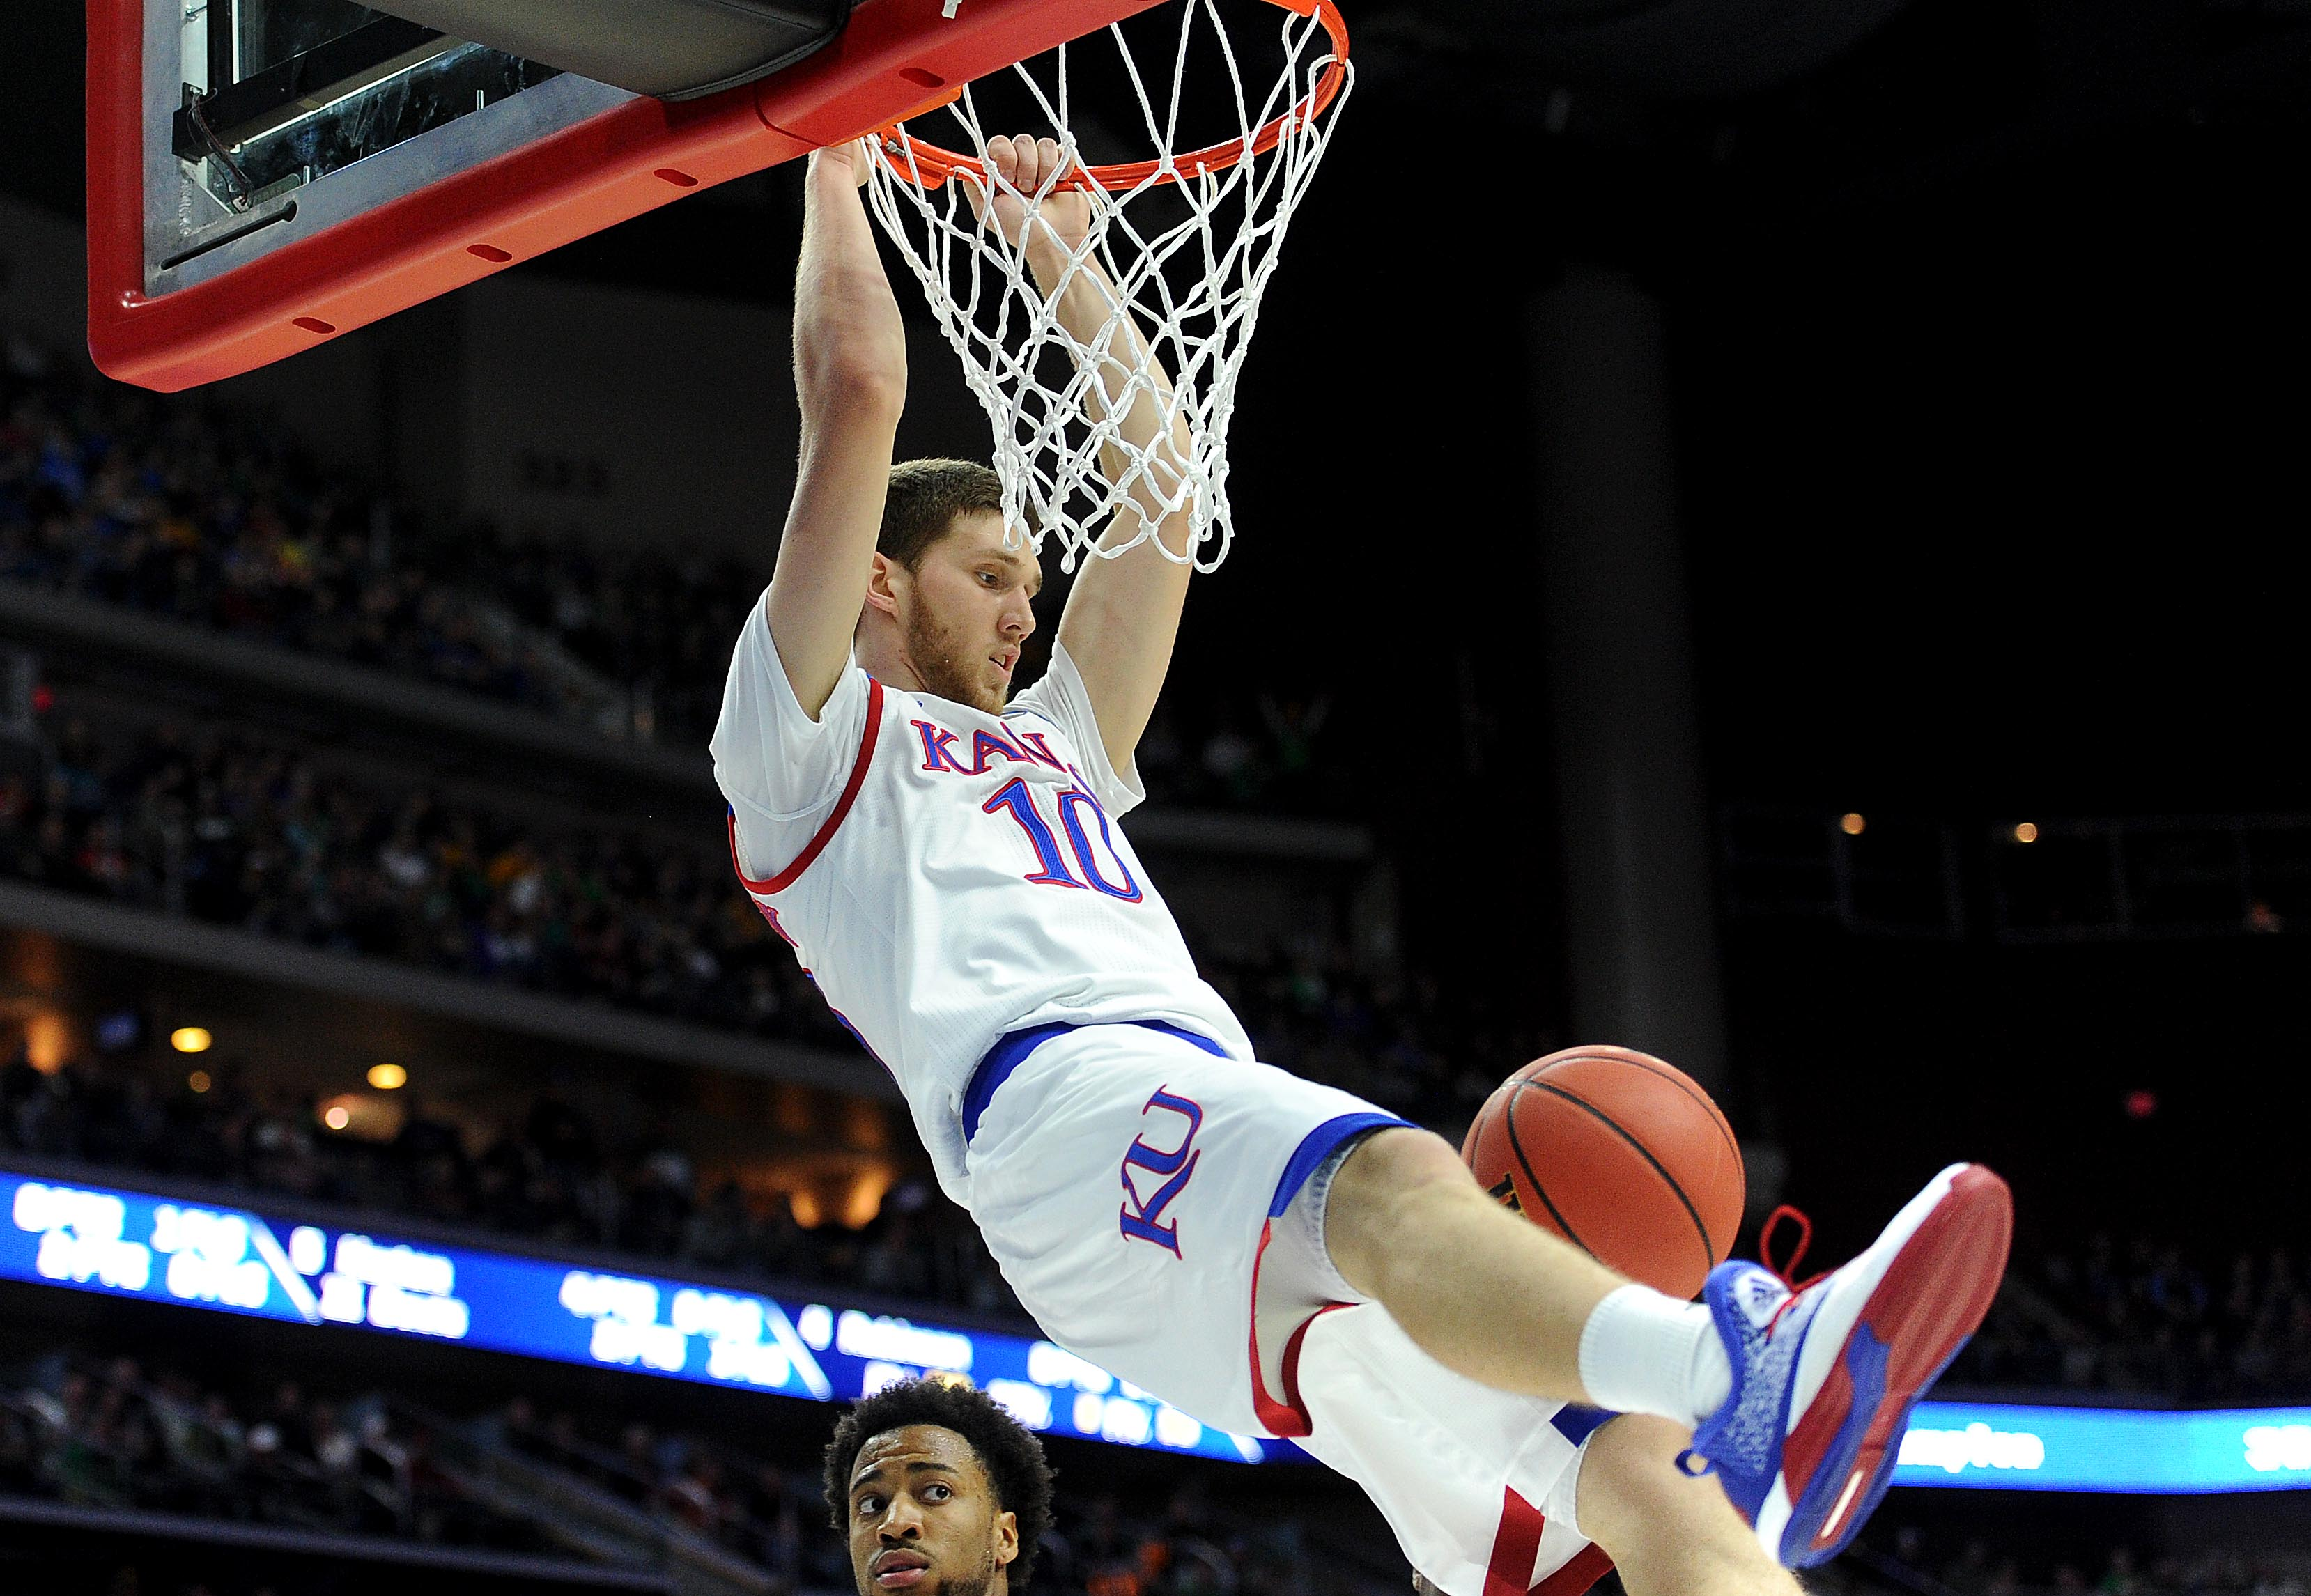 KU Basketball: Multiple factors may lead Svi Mykhailiuk ...